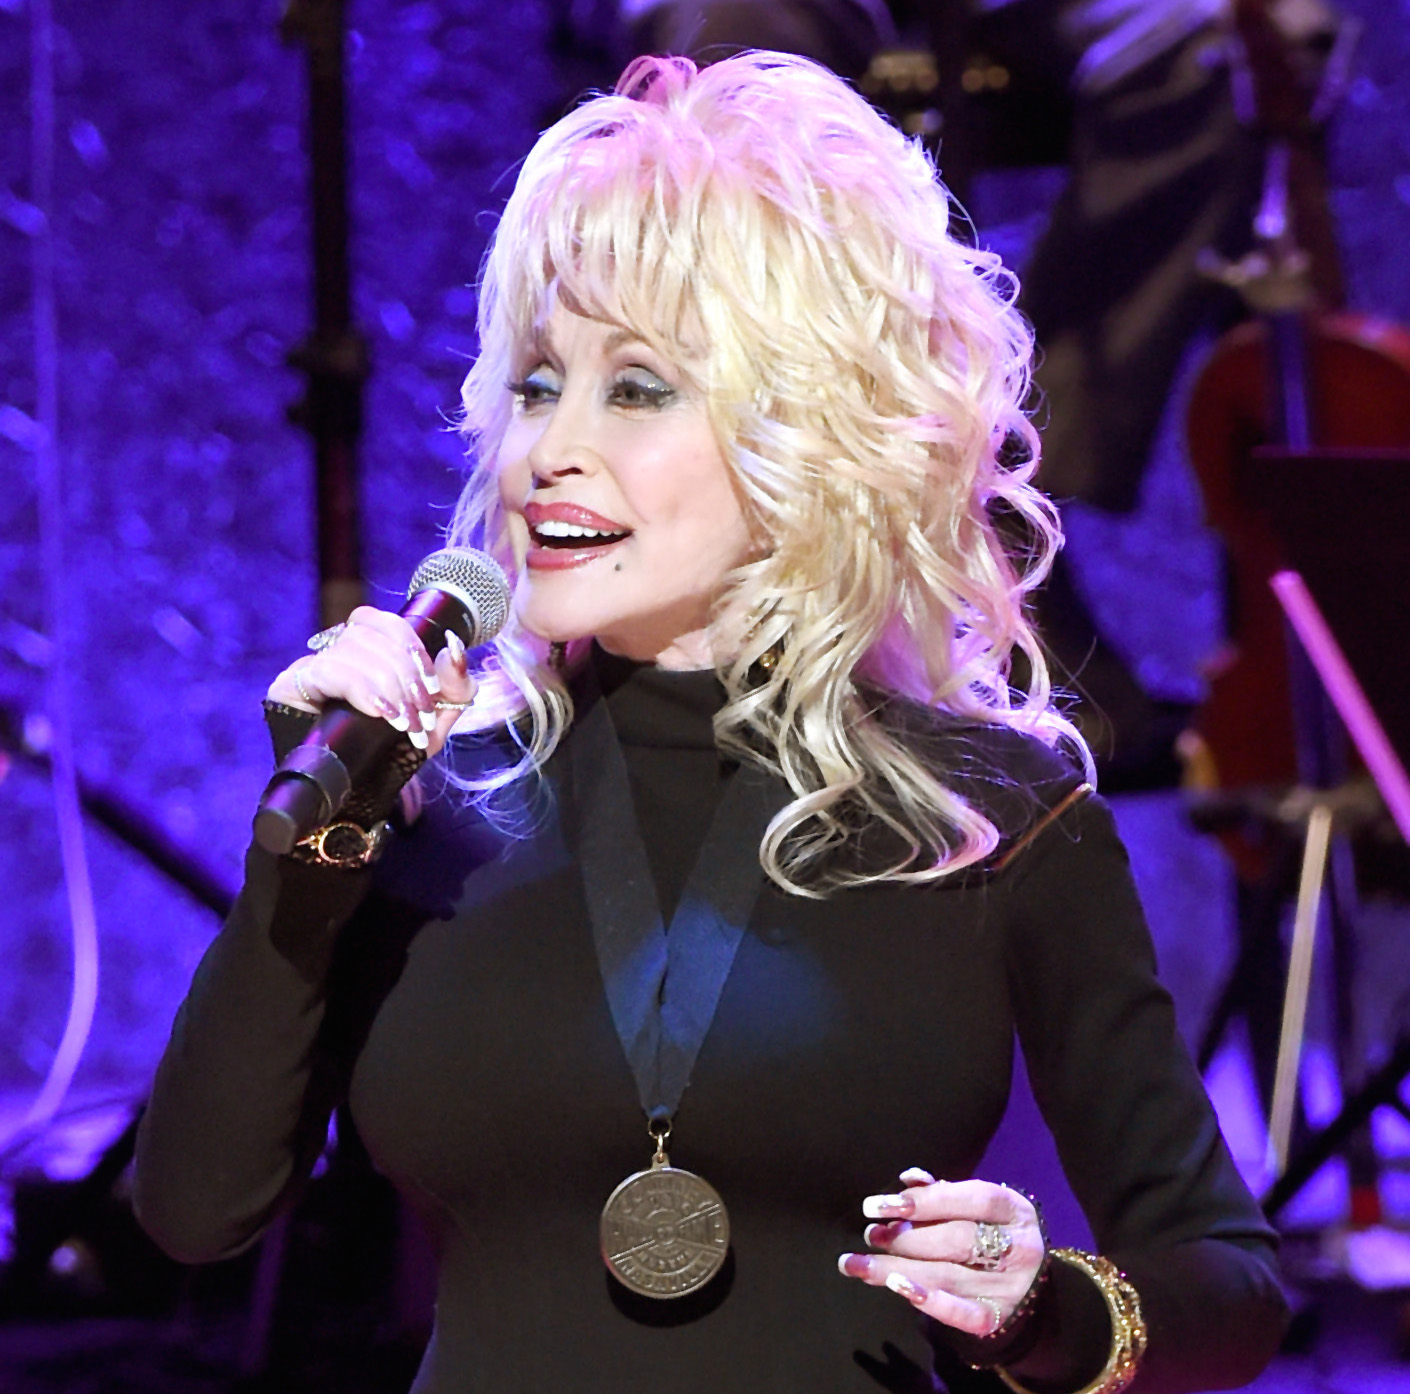 NASHVILLE, TN - OCTOBER 16:  Dolly Parton performs onstage during the 2016 Medallion Ceremony at Country Music Hall of Fame and Museum on October 16, 2016 in Nashville, Tennessee.  (Photo by Rick Diamond/Getty Images for Country Music Hall of Fame & Museum)